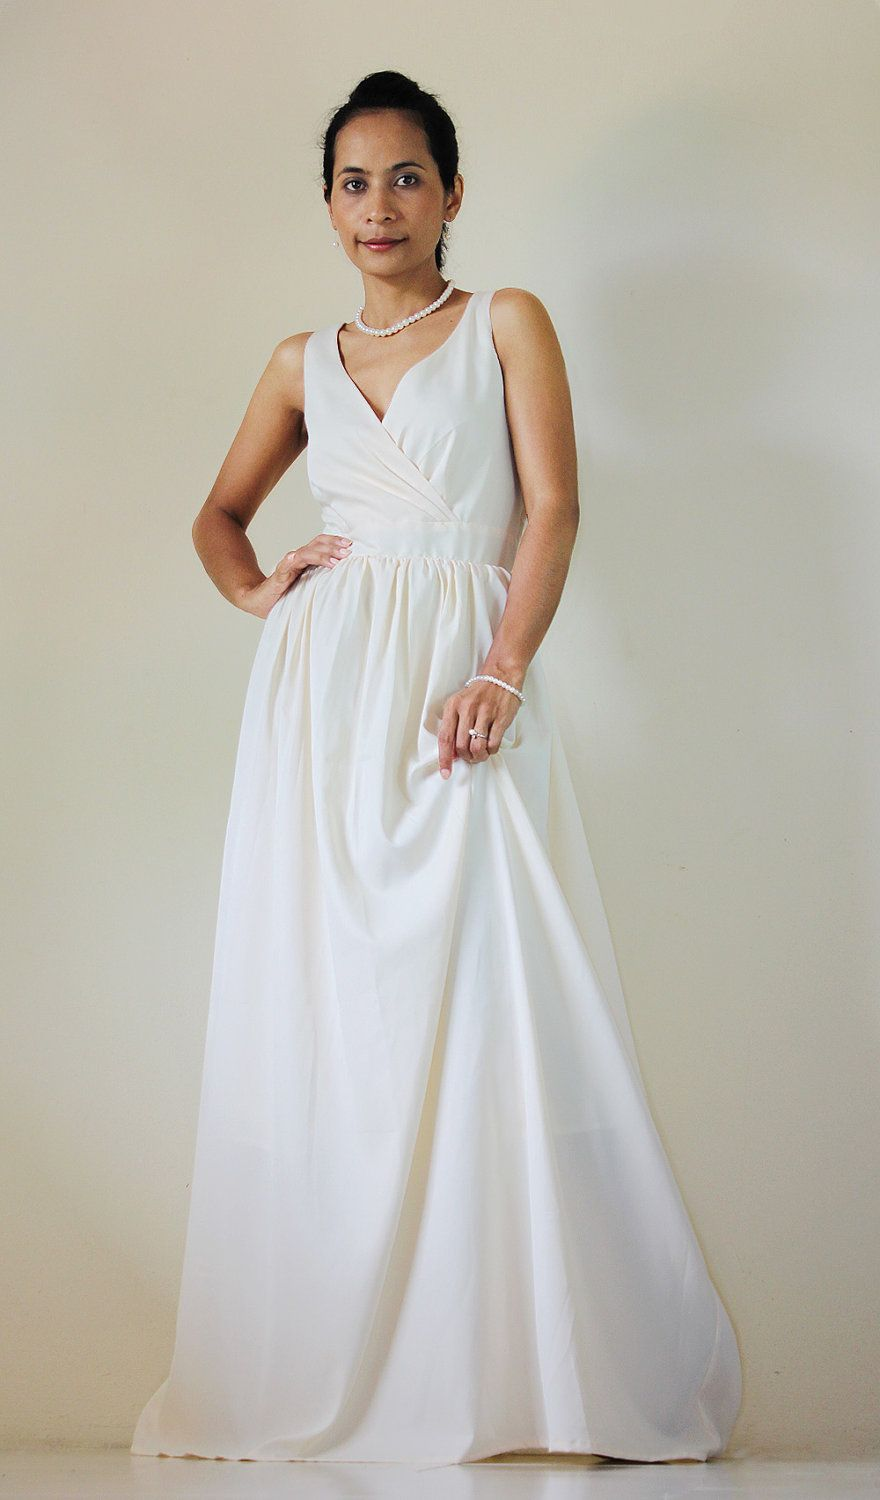 Cream Maxi dress Classy Sexy Pleated  V shape Sleeveless  Formal Long Evening Gown: Bussaba My Endless Love  Collection. $69,00, via Etsy.